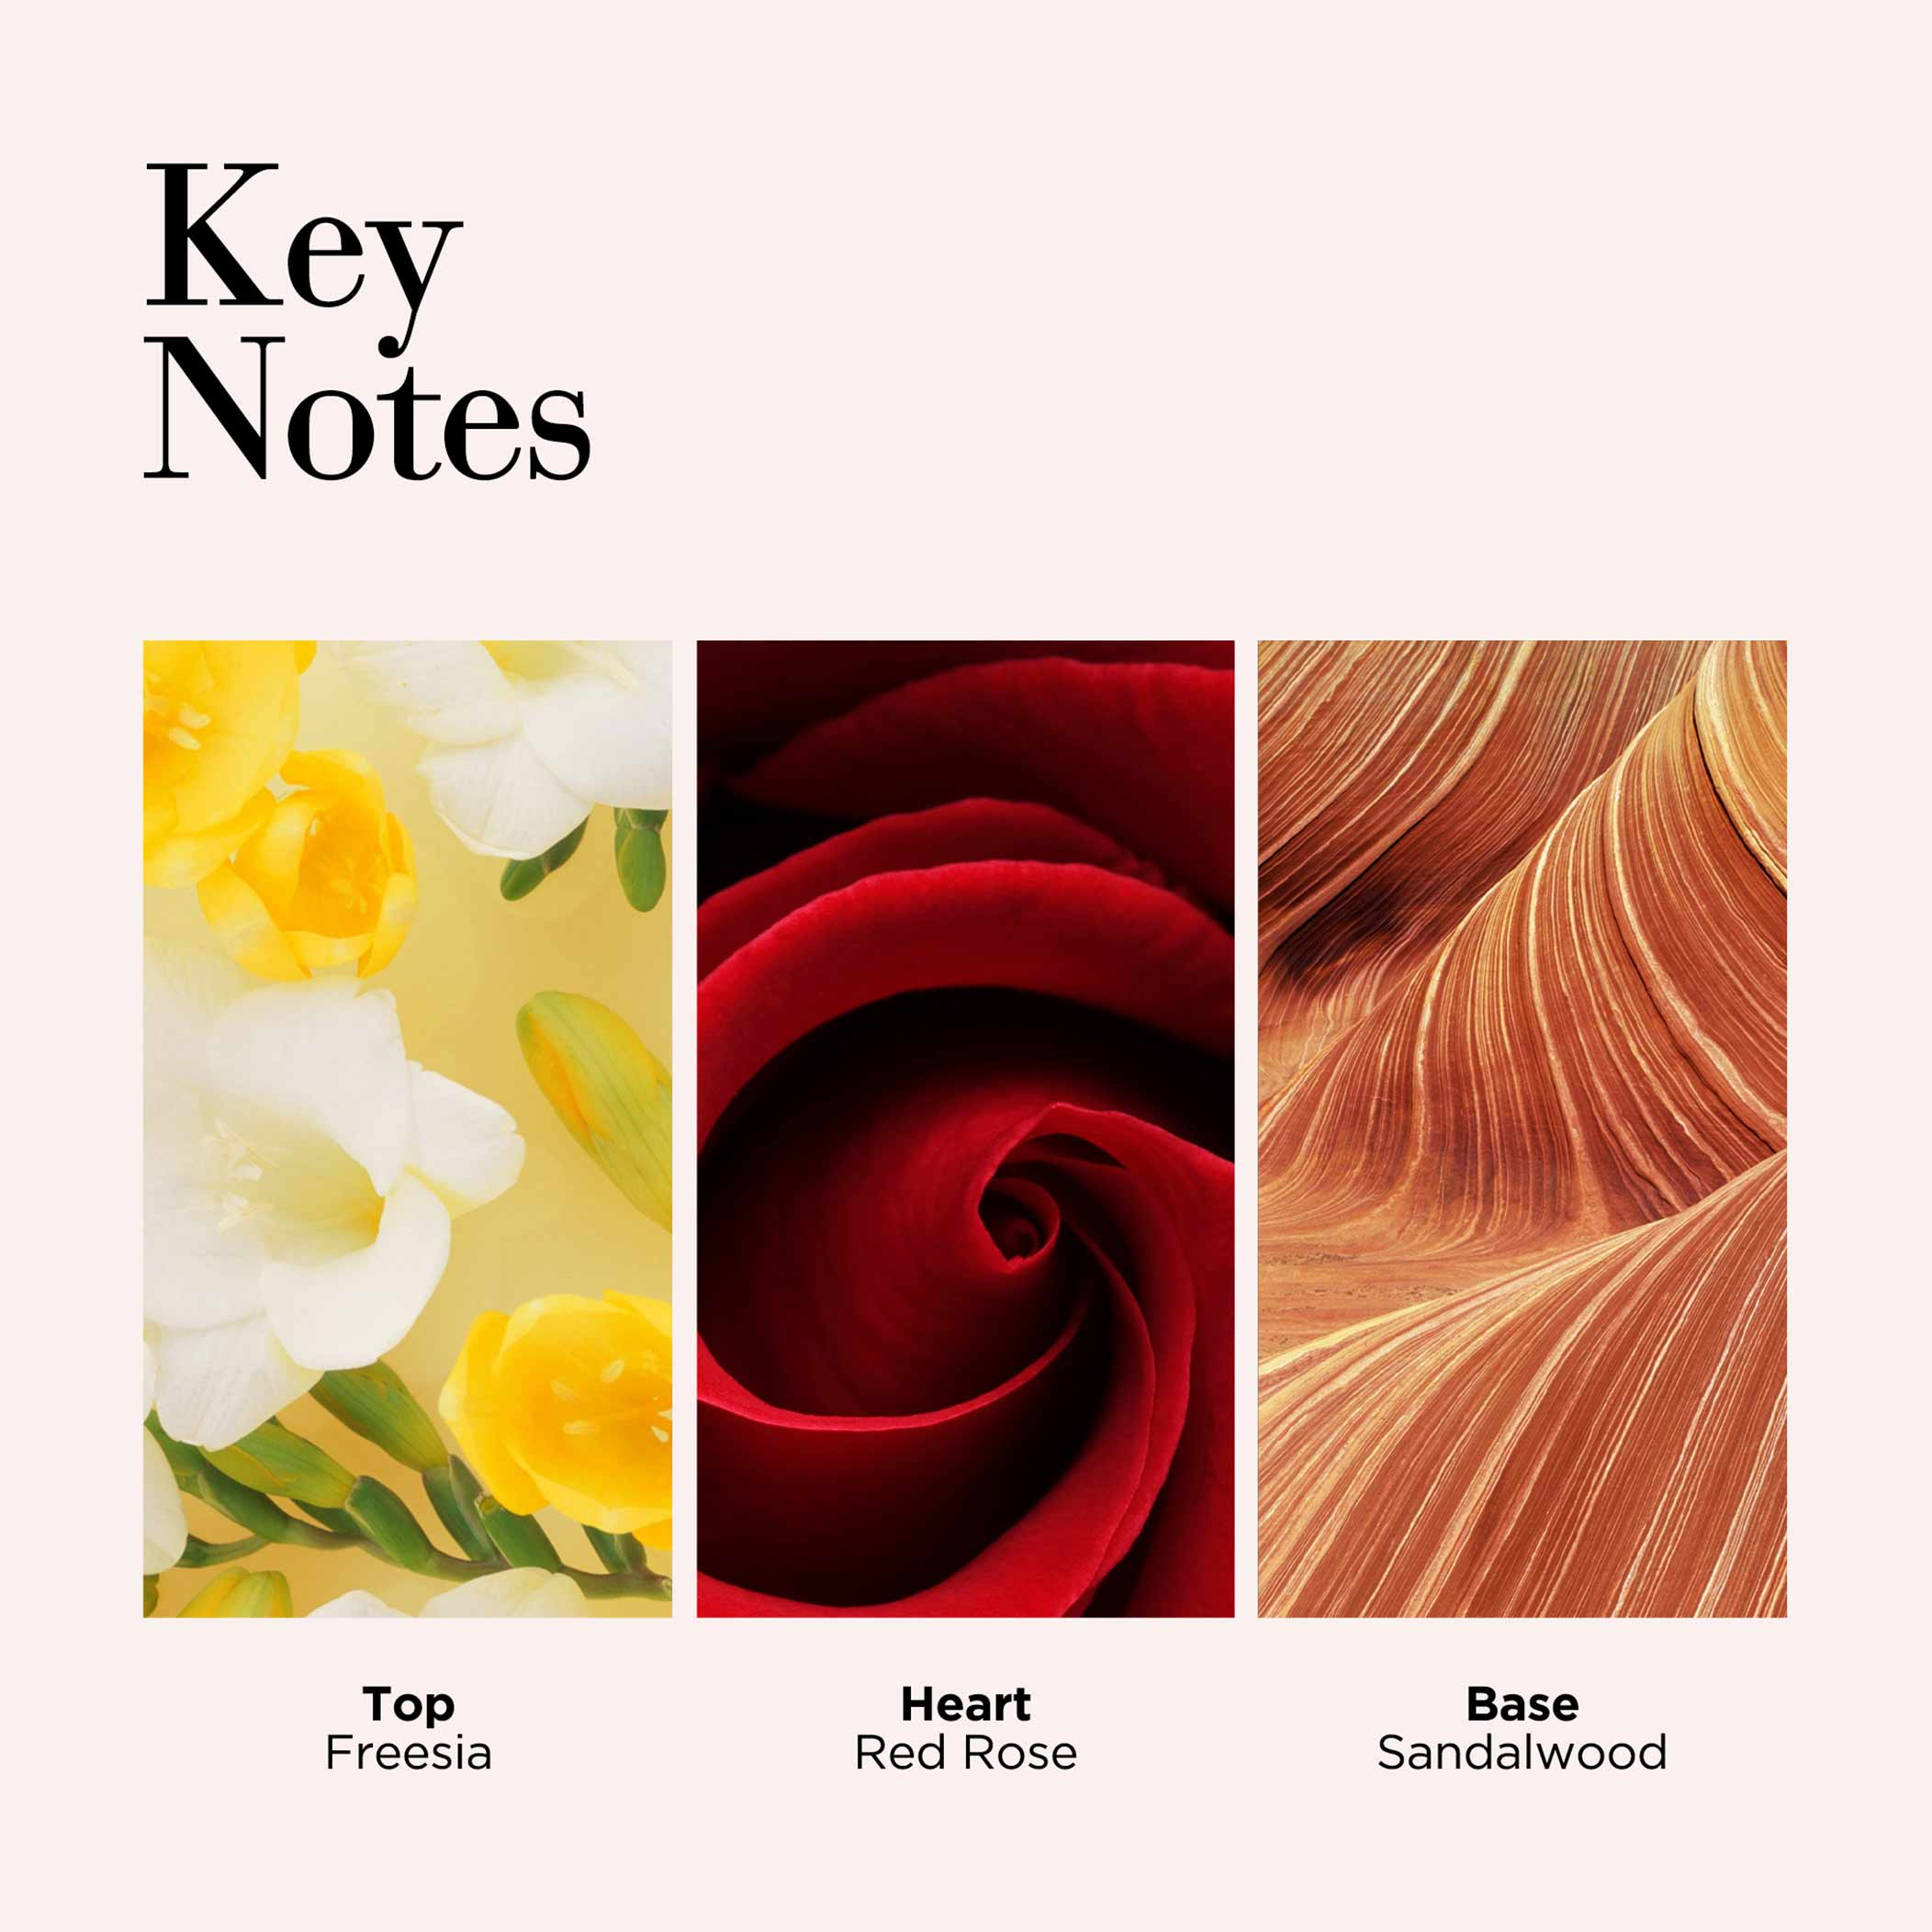 Key Notes, Top Freesia, Mid Red Rose, Base Sandalwood